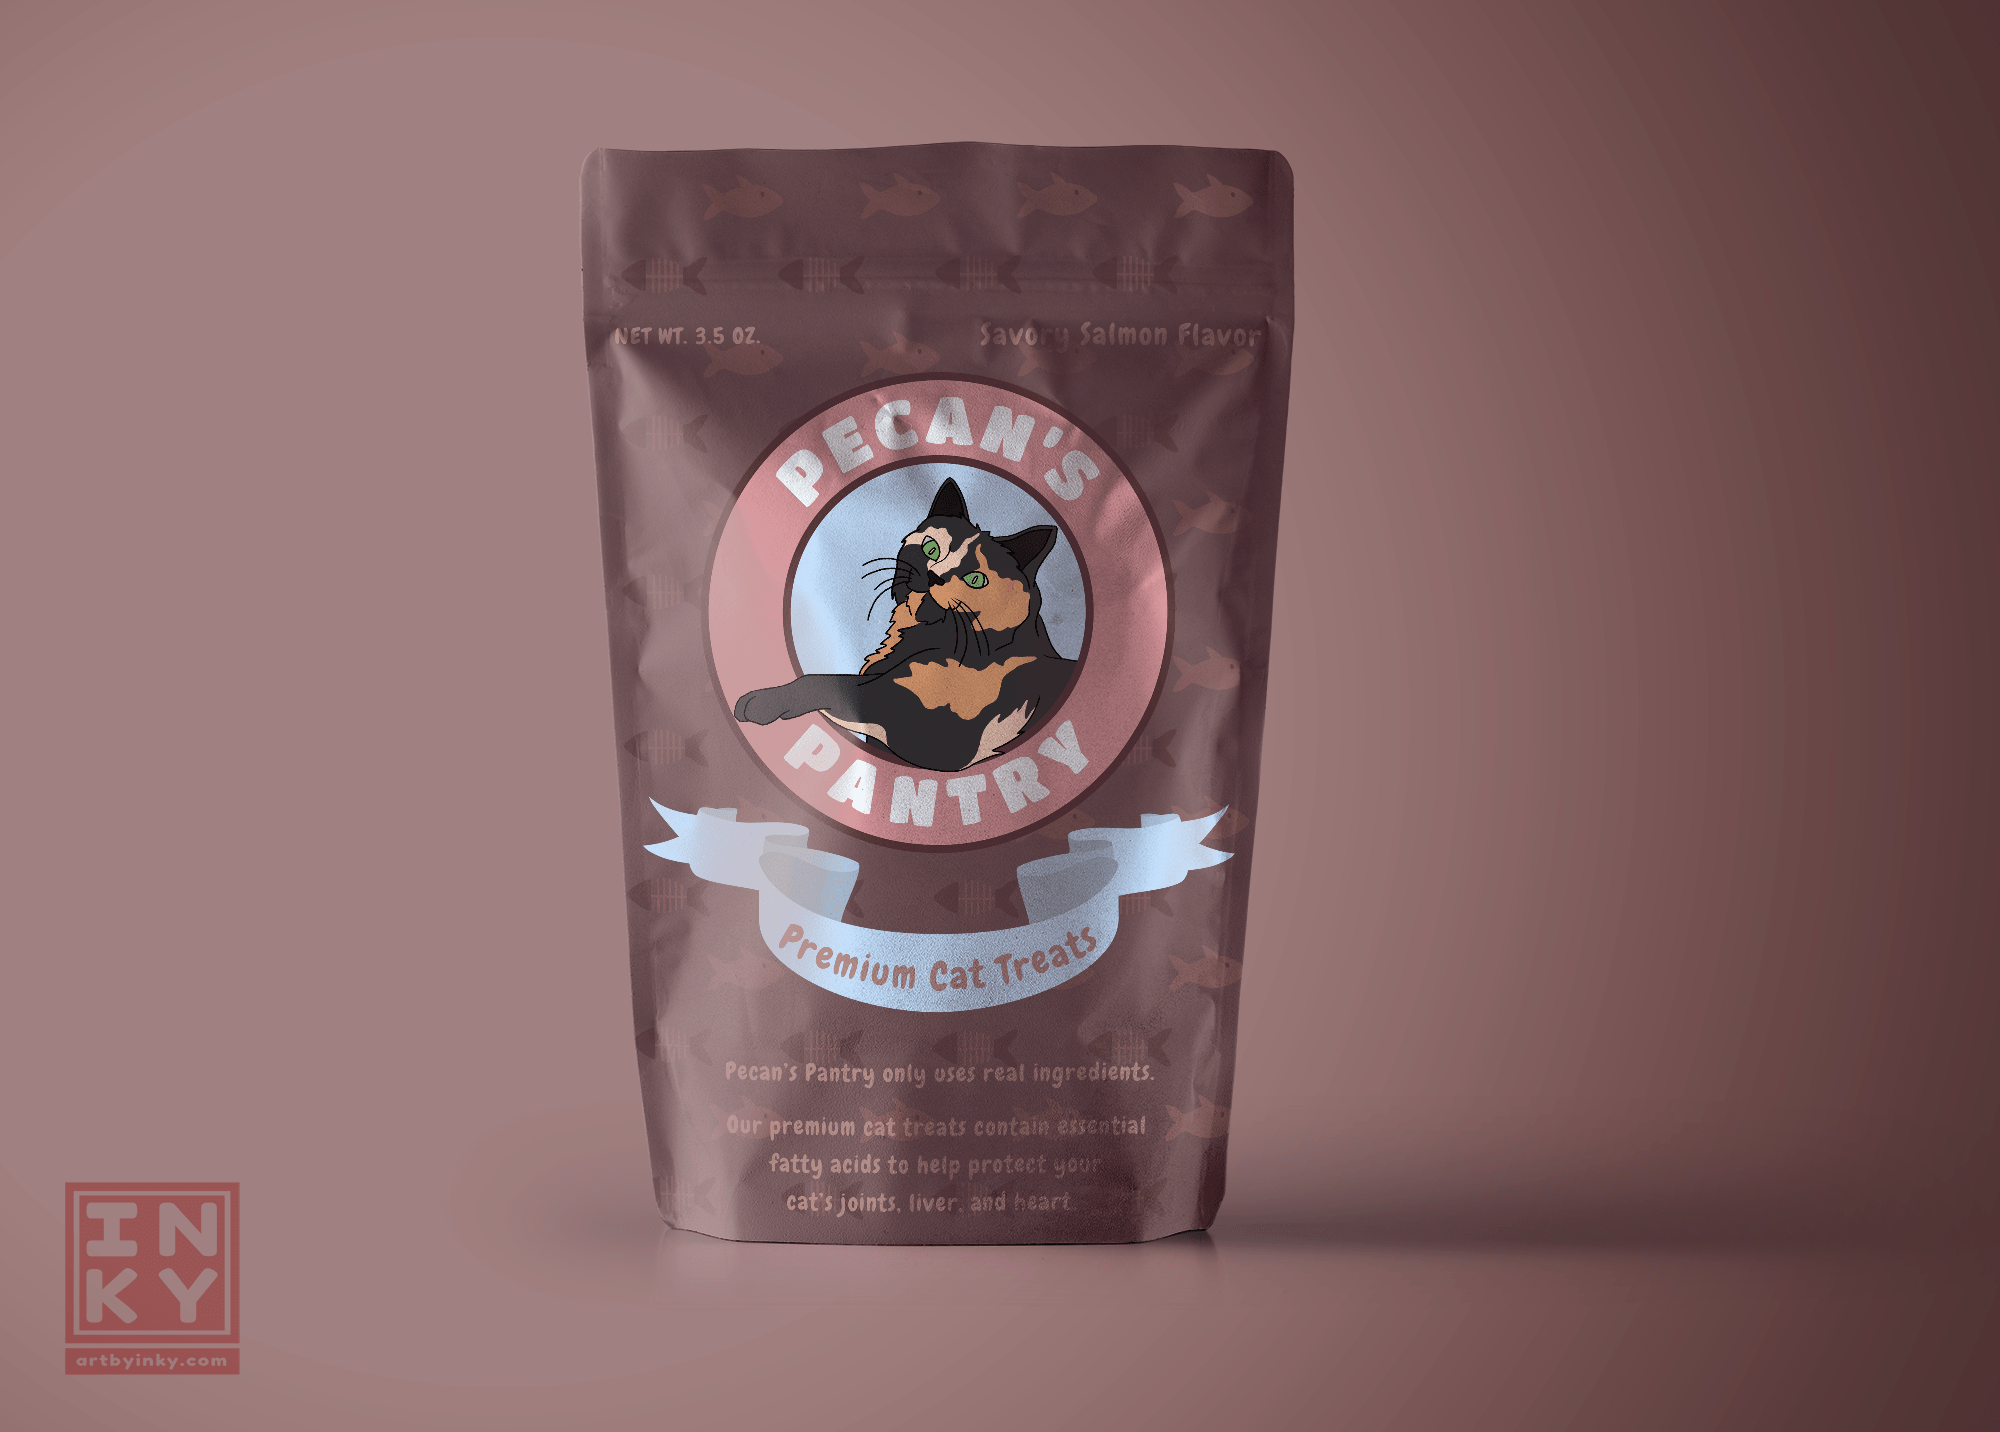 A packaging mockup of Pecan's Pantry, a fictional business, created by Aleesha Lindstrom